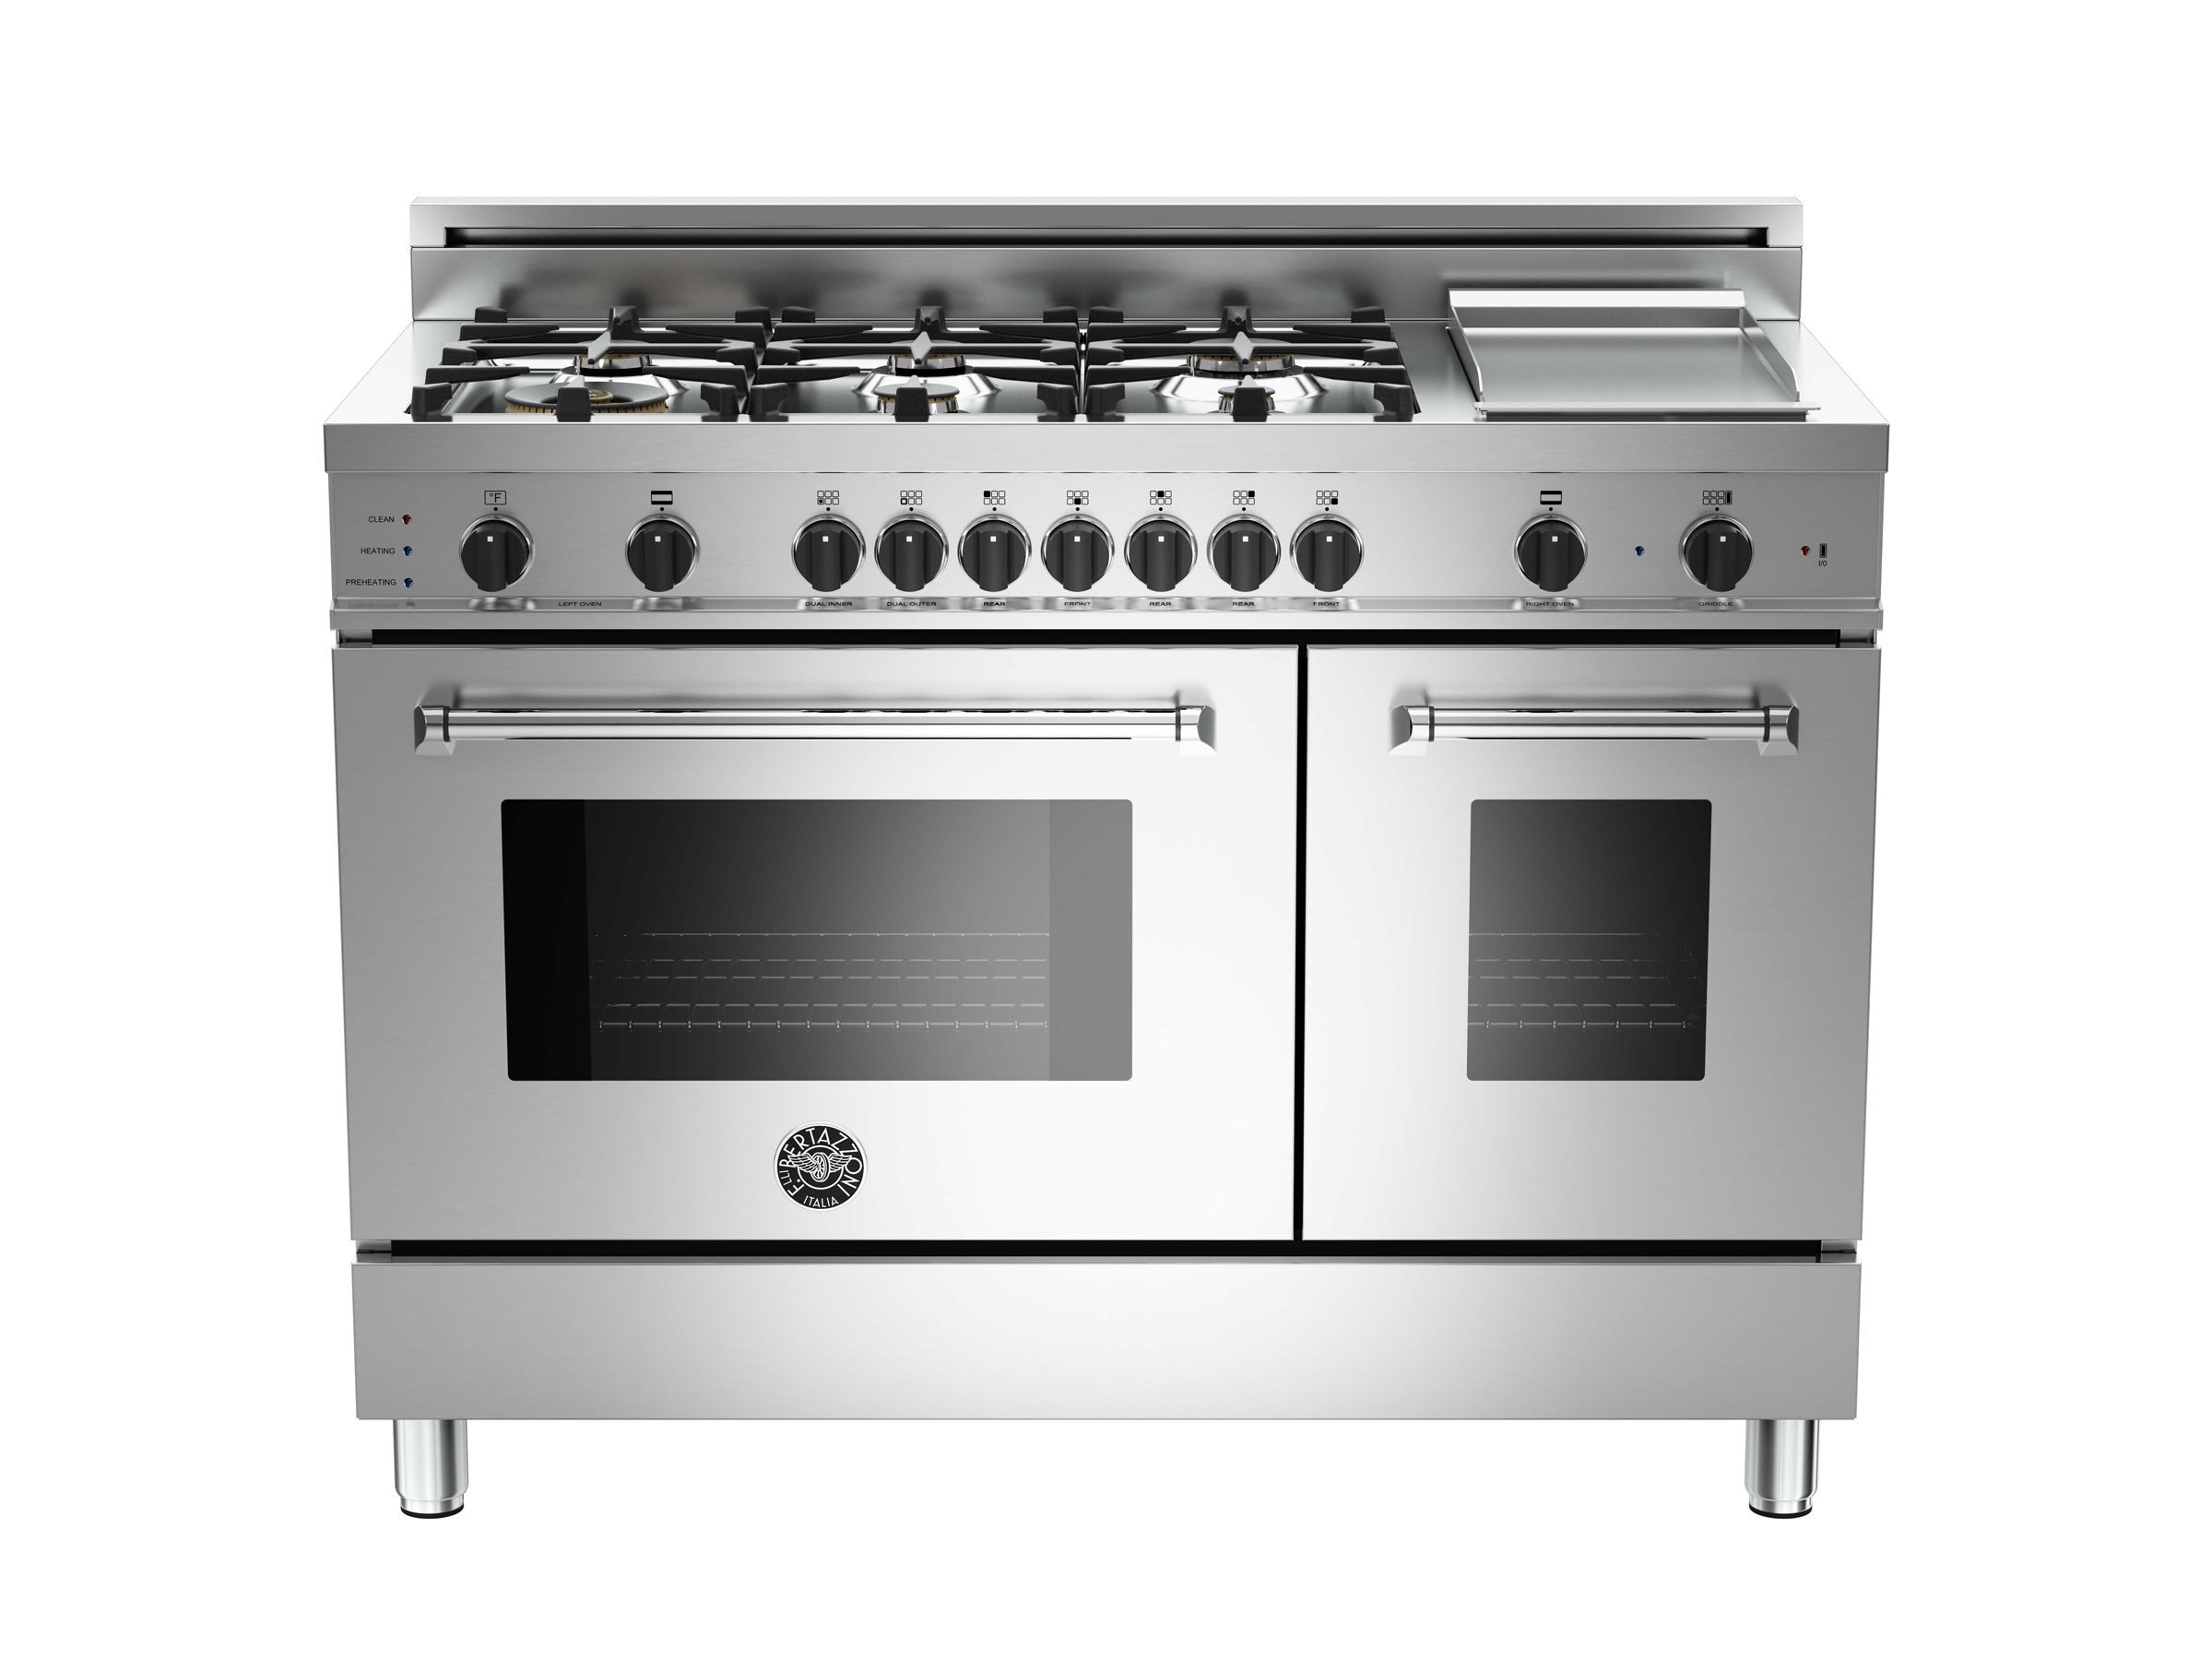 48 6-Burner+Griddle, Electric Self-Clean Double oven   Kitchen ...